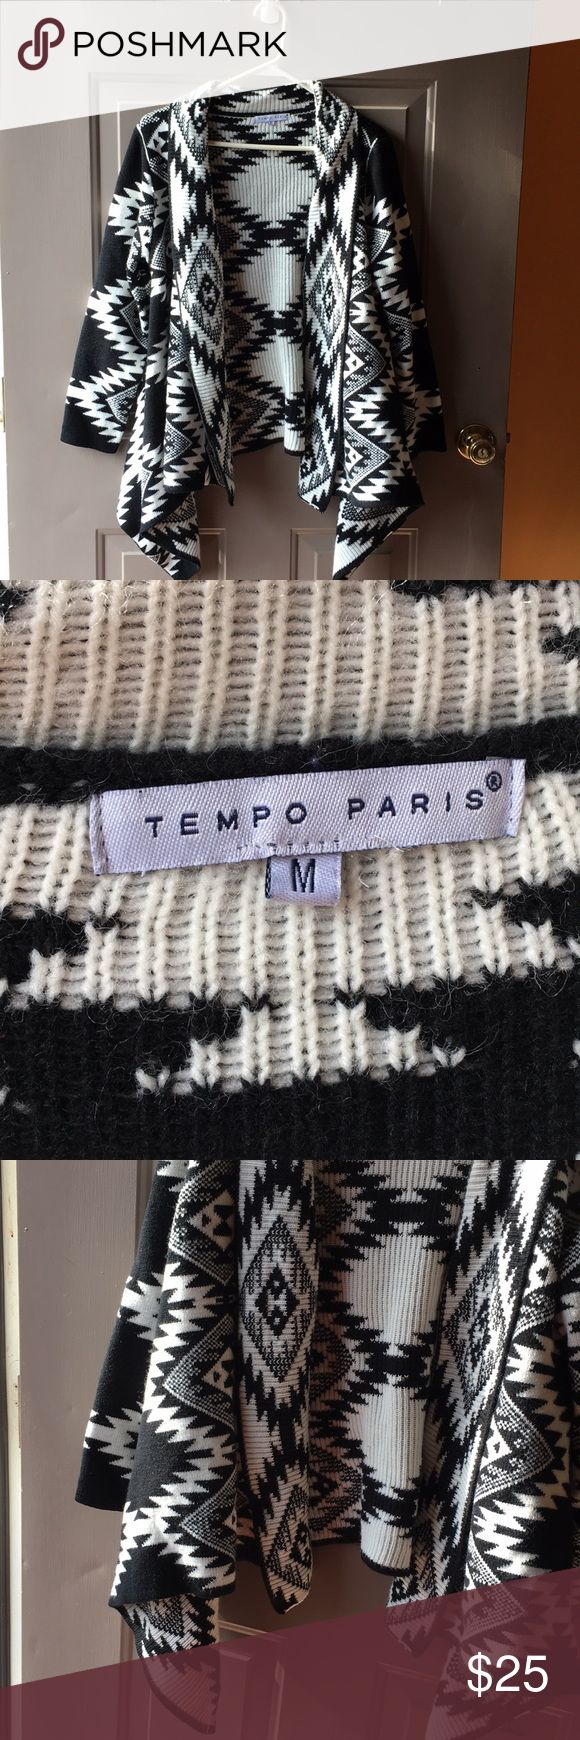 Tempo Paris black and white carnigan sweater Very pretty south western print black and white super soft cardnigan sweater. Does not button or zip. Super thick and comfy. Size medium. Very gently used Tempo Paris Sweaters Cardigans